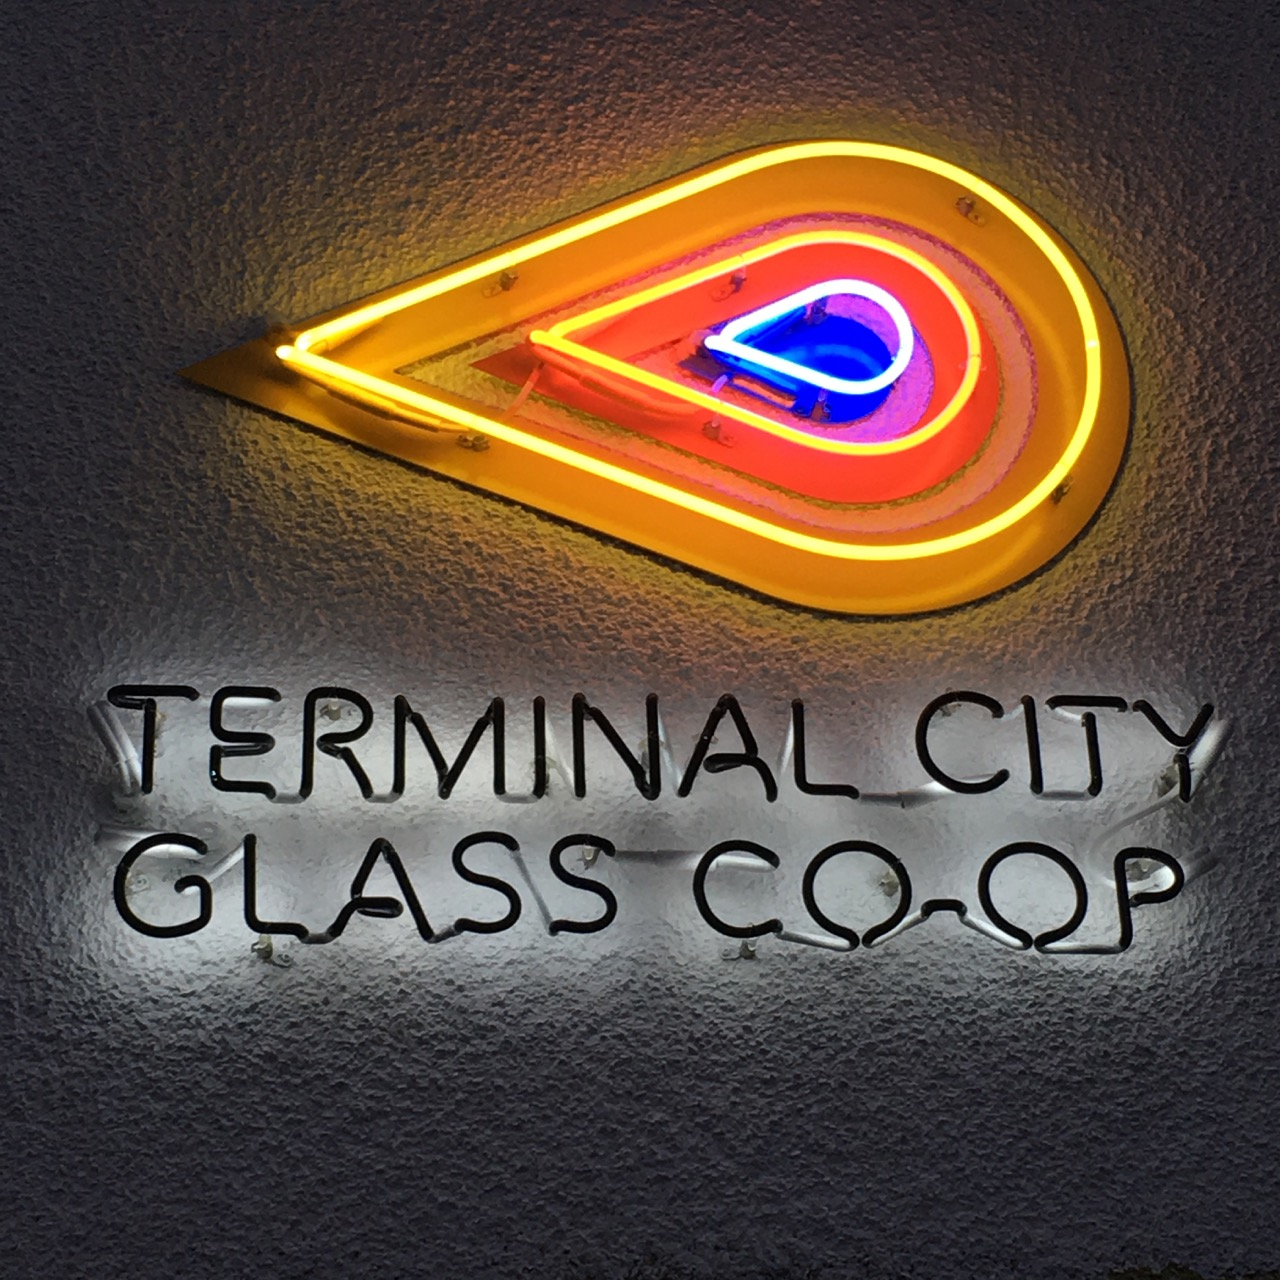 Terminal City Glass Co-op